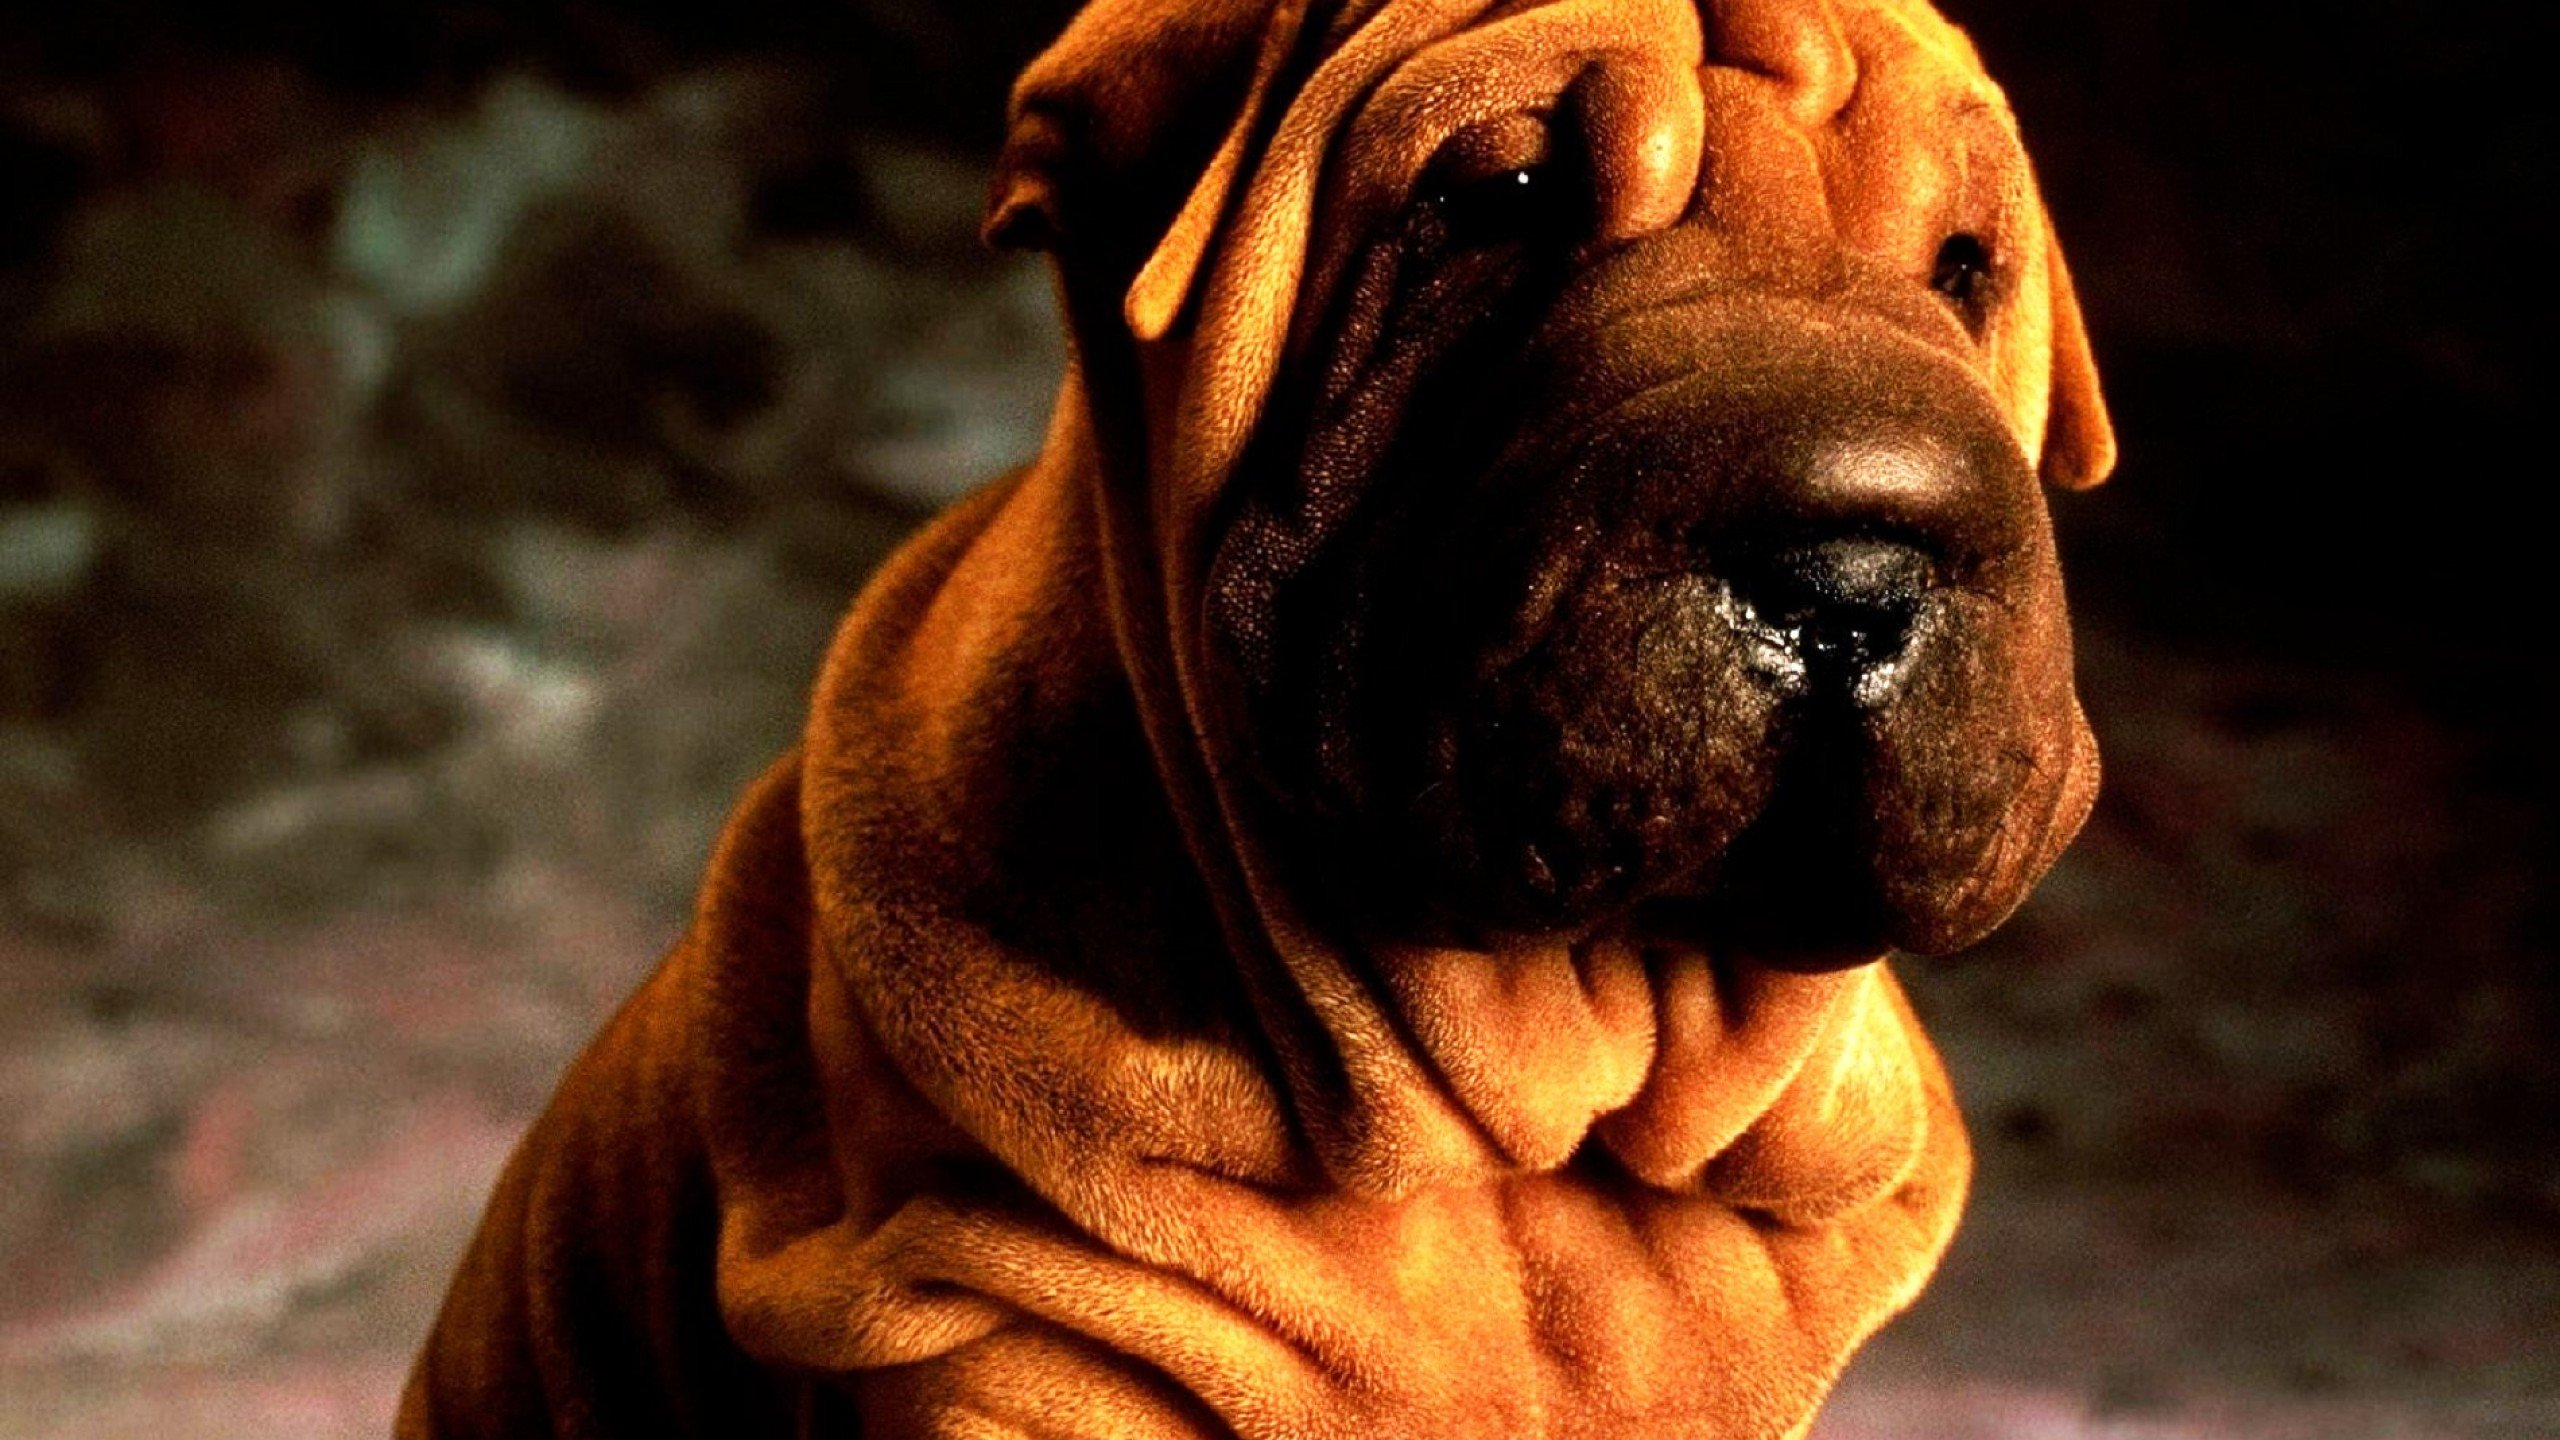 Free Shar Pei high quality background ID:376277 for hd 2560x1440 computer